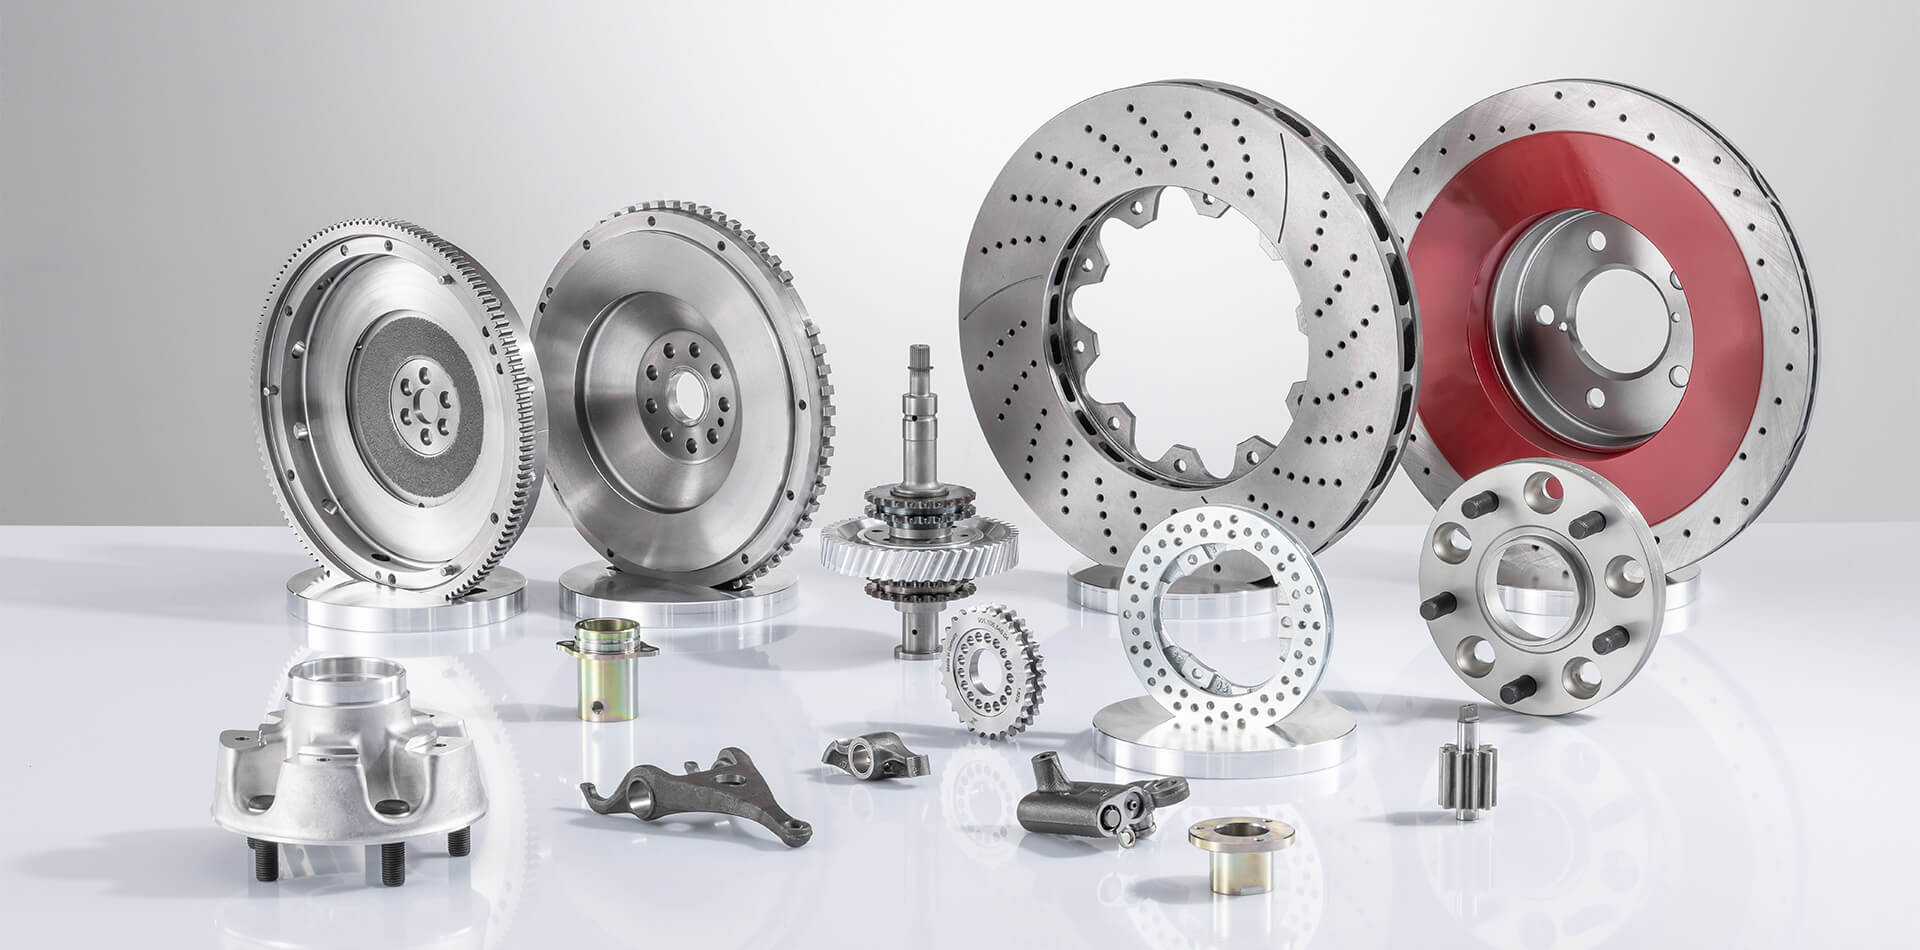 Manufacturer of original spare parts for almost all models of the Porsche brand